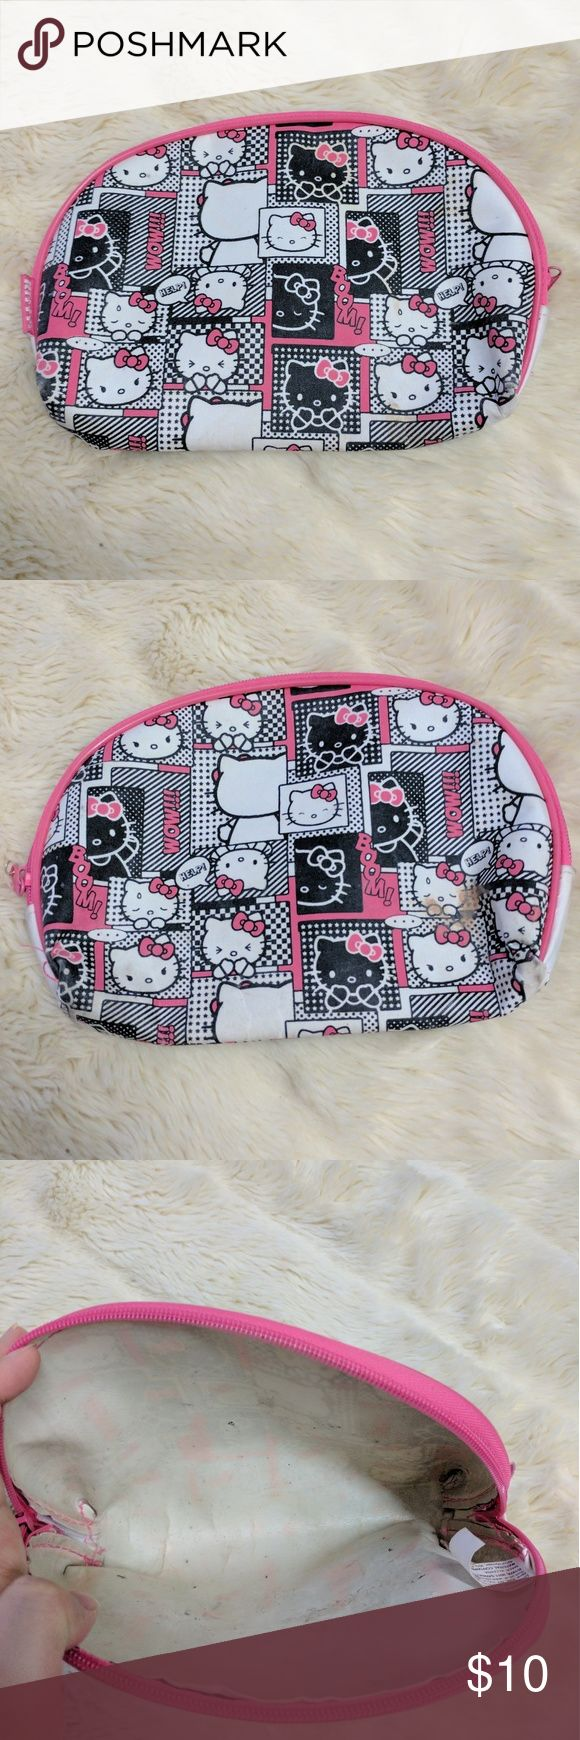 Hello Kitty Makeup Bag This is a pink, black, and white Hello Kitty cosmetics bag with a comic book style print. Has some make up stains, as pictured, but still in good condition. Hello Kitty Bags Cosmetic Bags & Cases